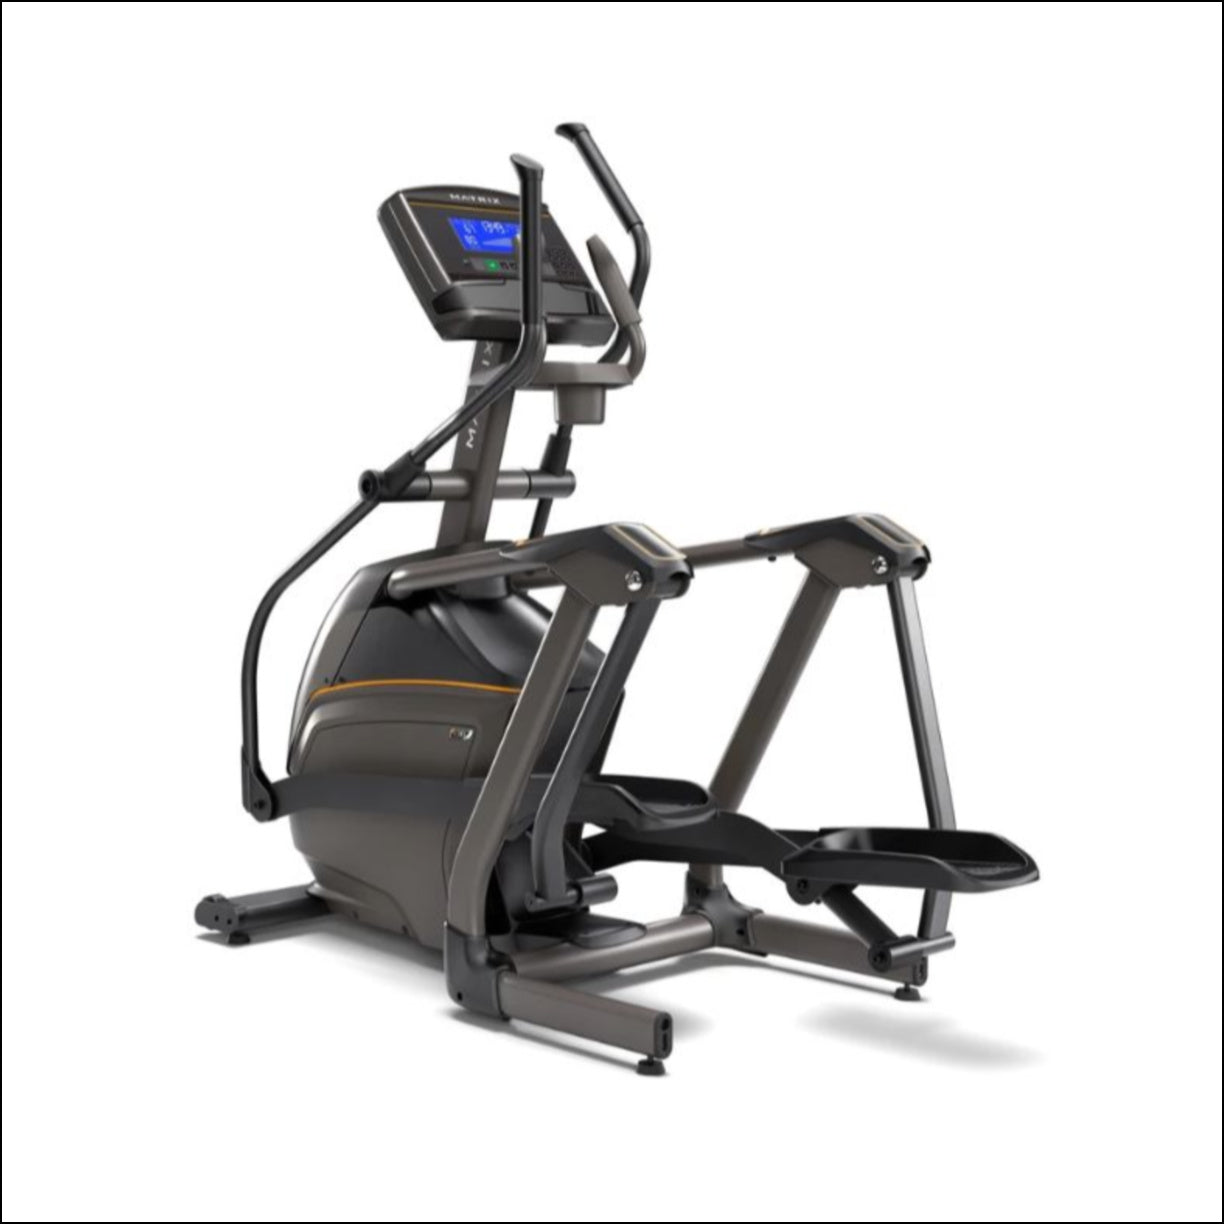 MATRIX E30 XR Elliptical A harmony of design and natural movement. Offer your customers the most compact, most comfortable, smoothest-moving elliptical in the industry.